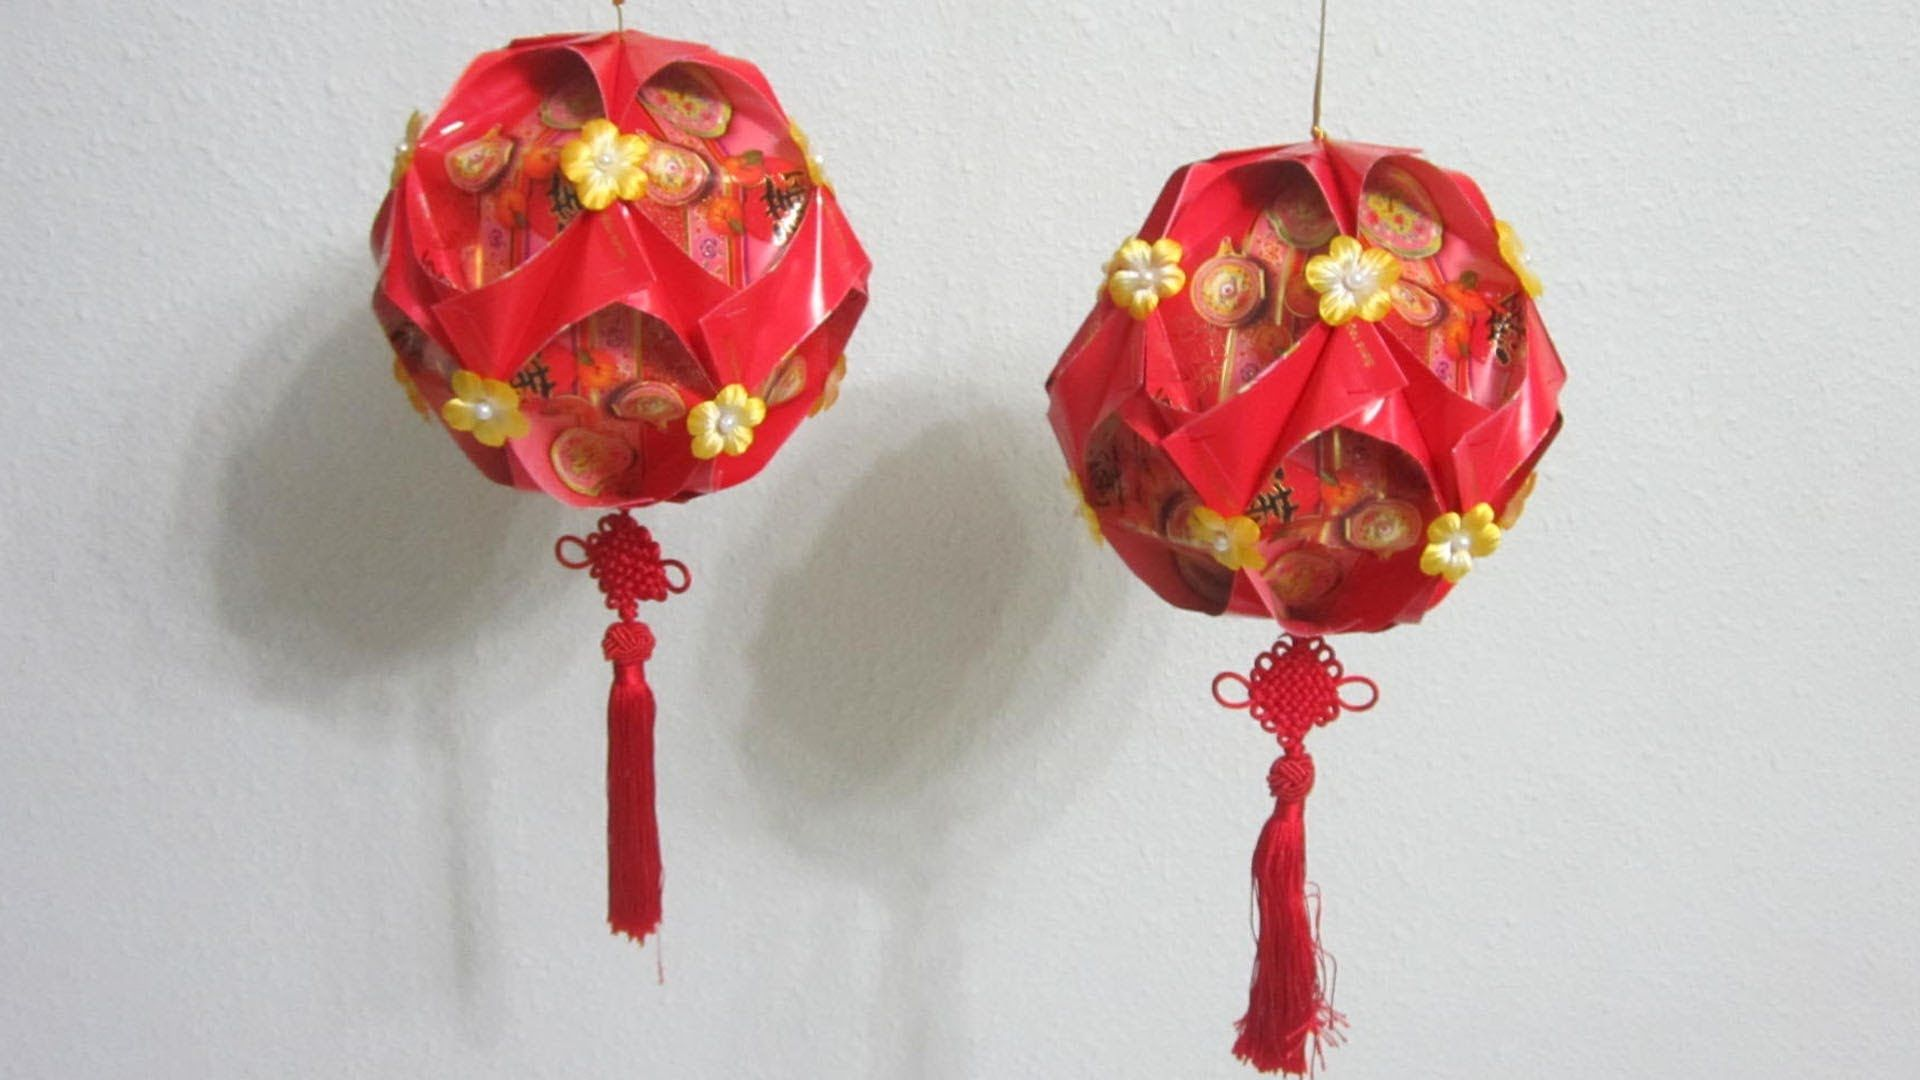 This simple and yet elegant Lunar New Year decorative ball